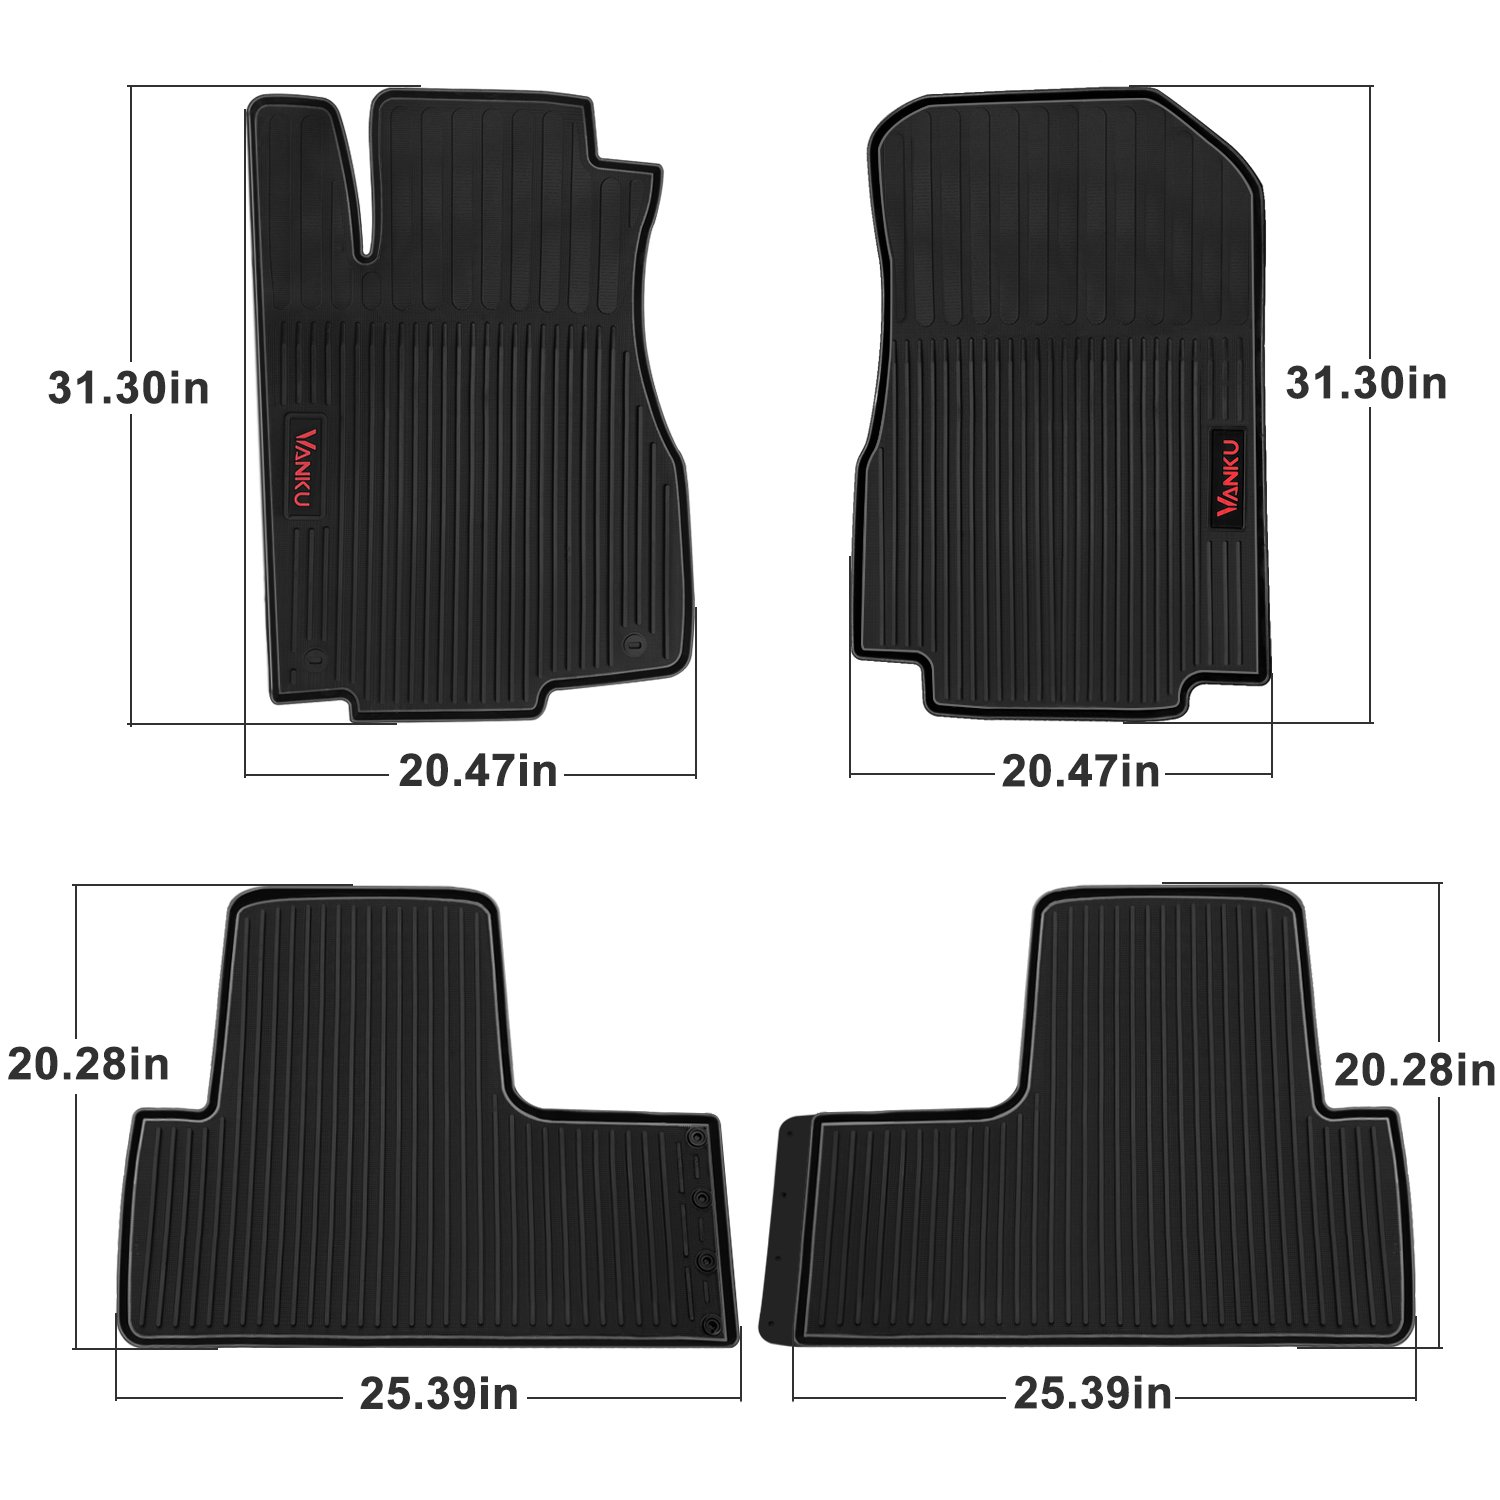 2018 Vanku Complete Set Floor Mats for Tesla Model 3 2017 2019 with Cup and Center Console Liner Accessories Black